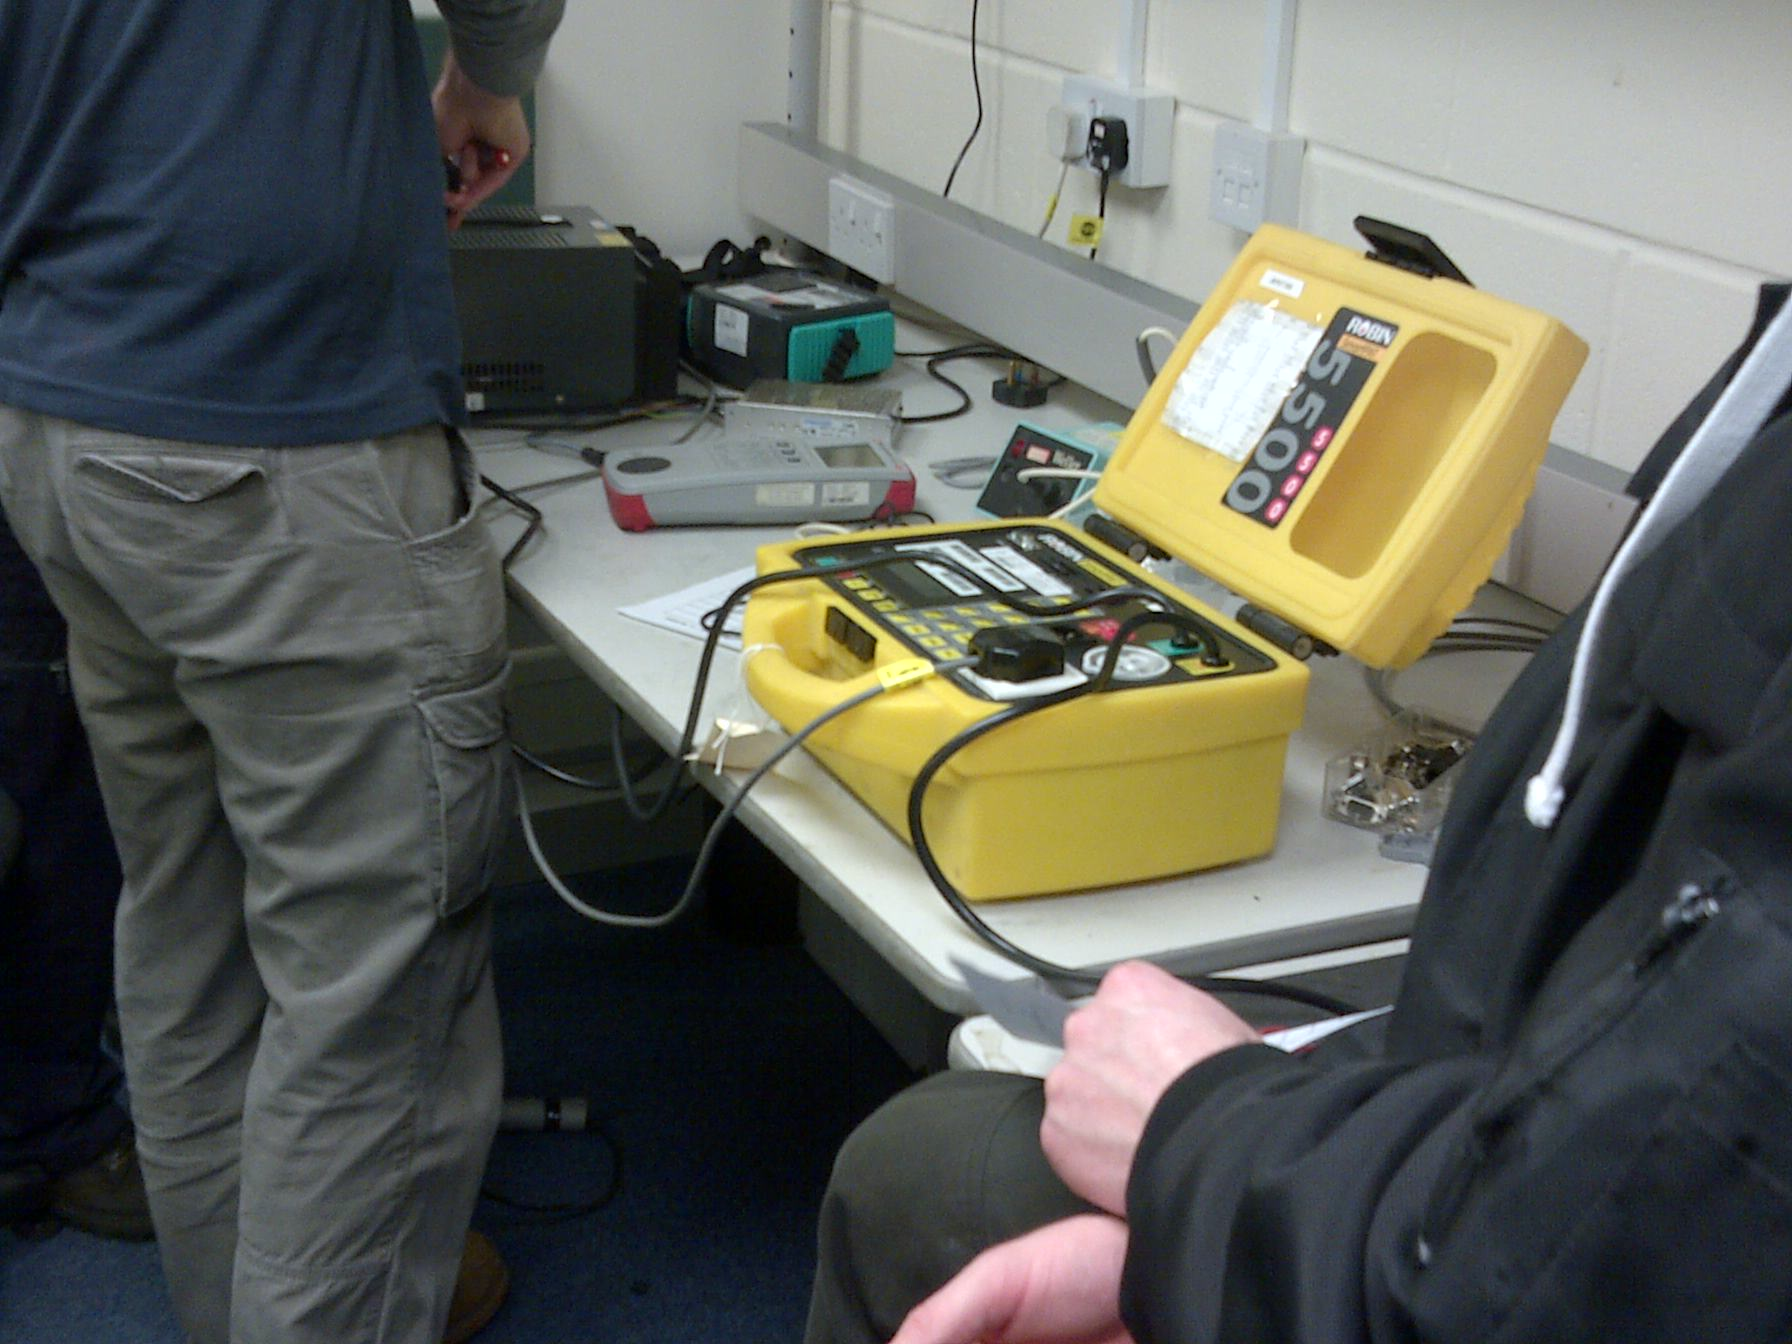 in-house pat testing course being held in workplace by worksafepat Ltd